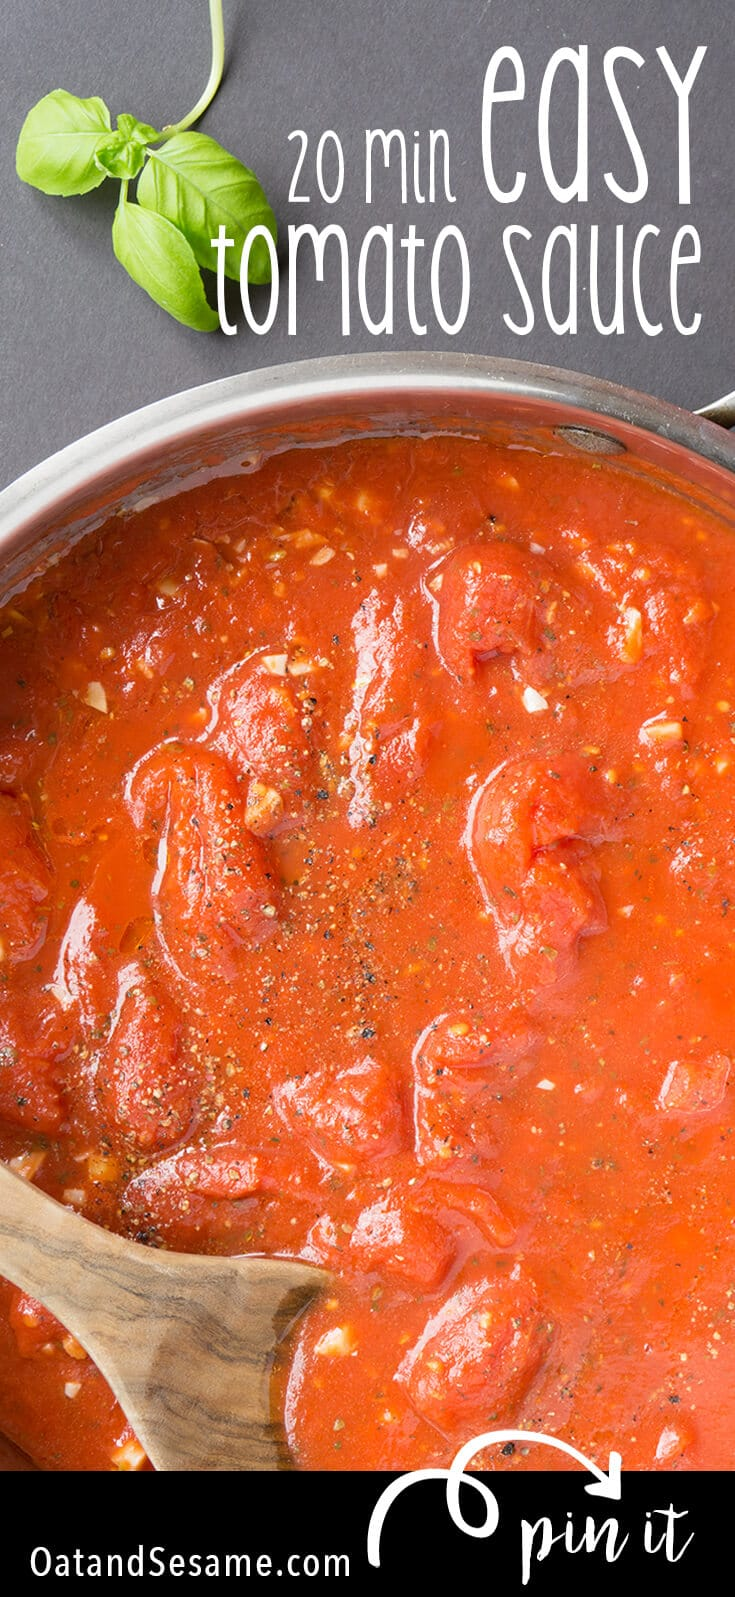 With just a few ingredients you can make a Simple Homemade Tomato Sauce that's WAAY better than any jarred sauce. Done in under 30 minutes, this versatile marinara sauce can be used for pizza sauce, pasta sauce, dipping and spreading! | PASTA | TOMATO | SAUCE | ITALIAN | PIZZA | Recipe at OatandSesame.com